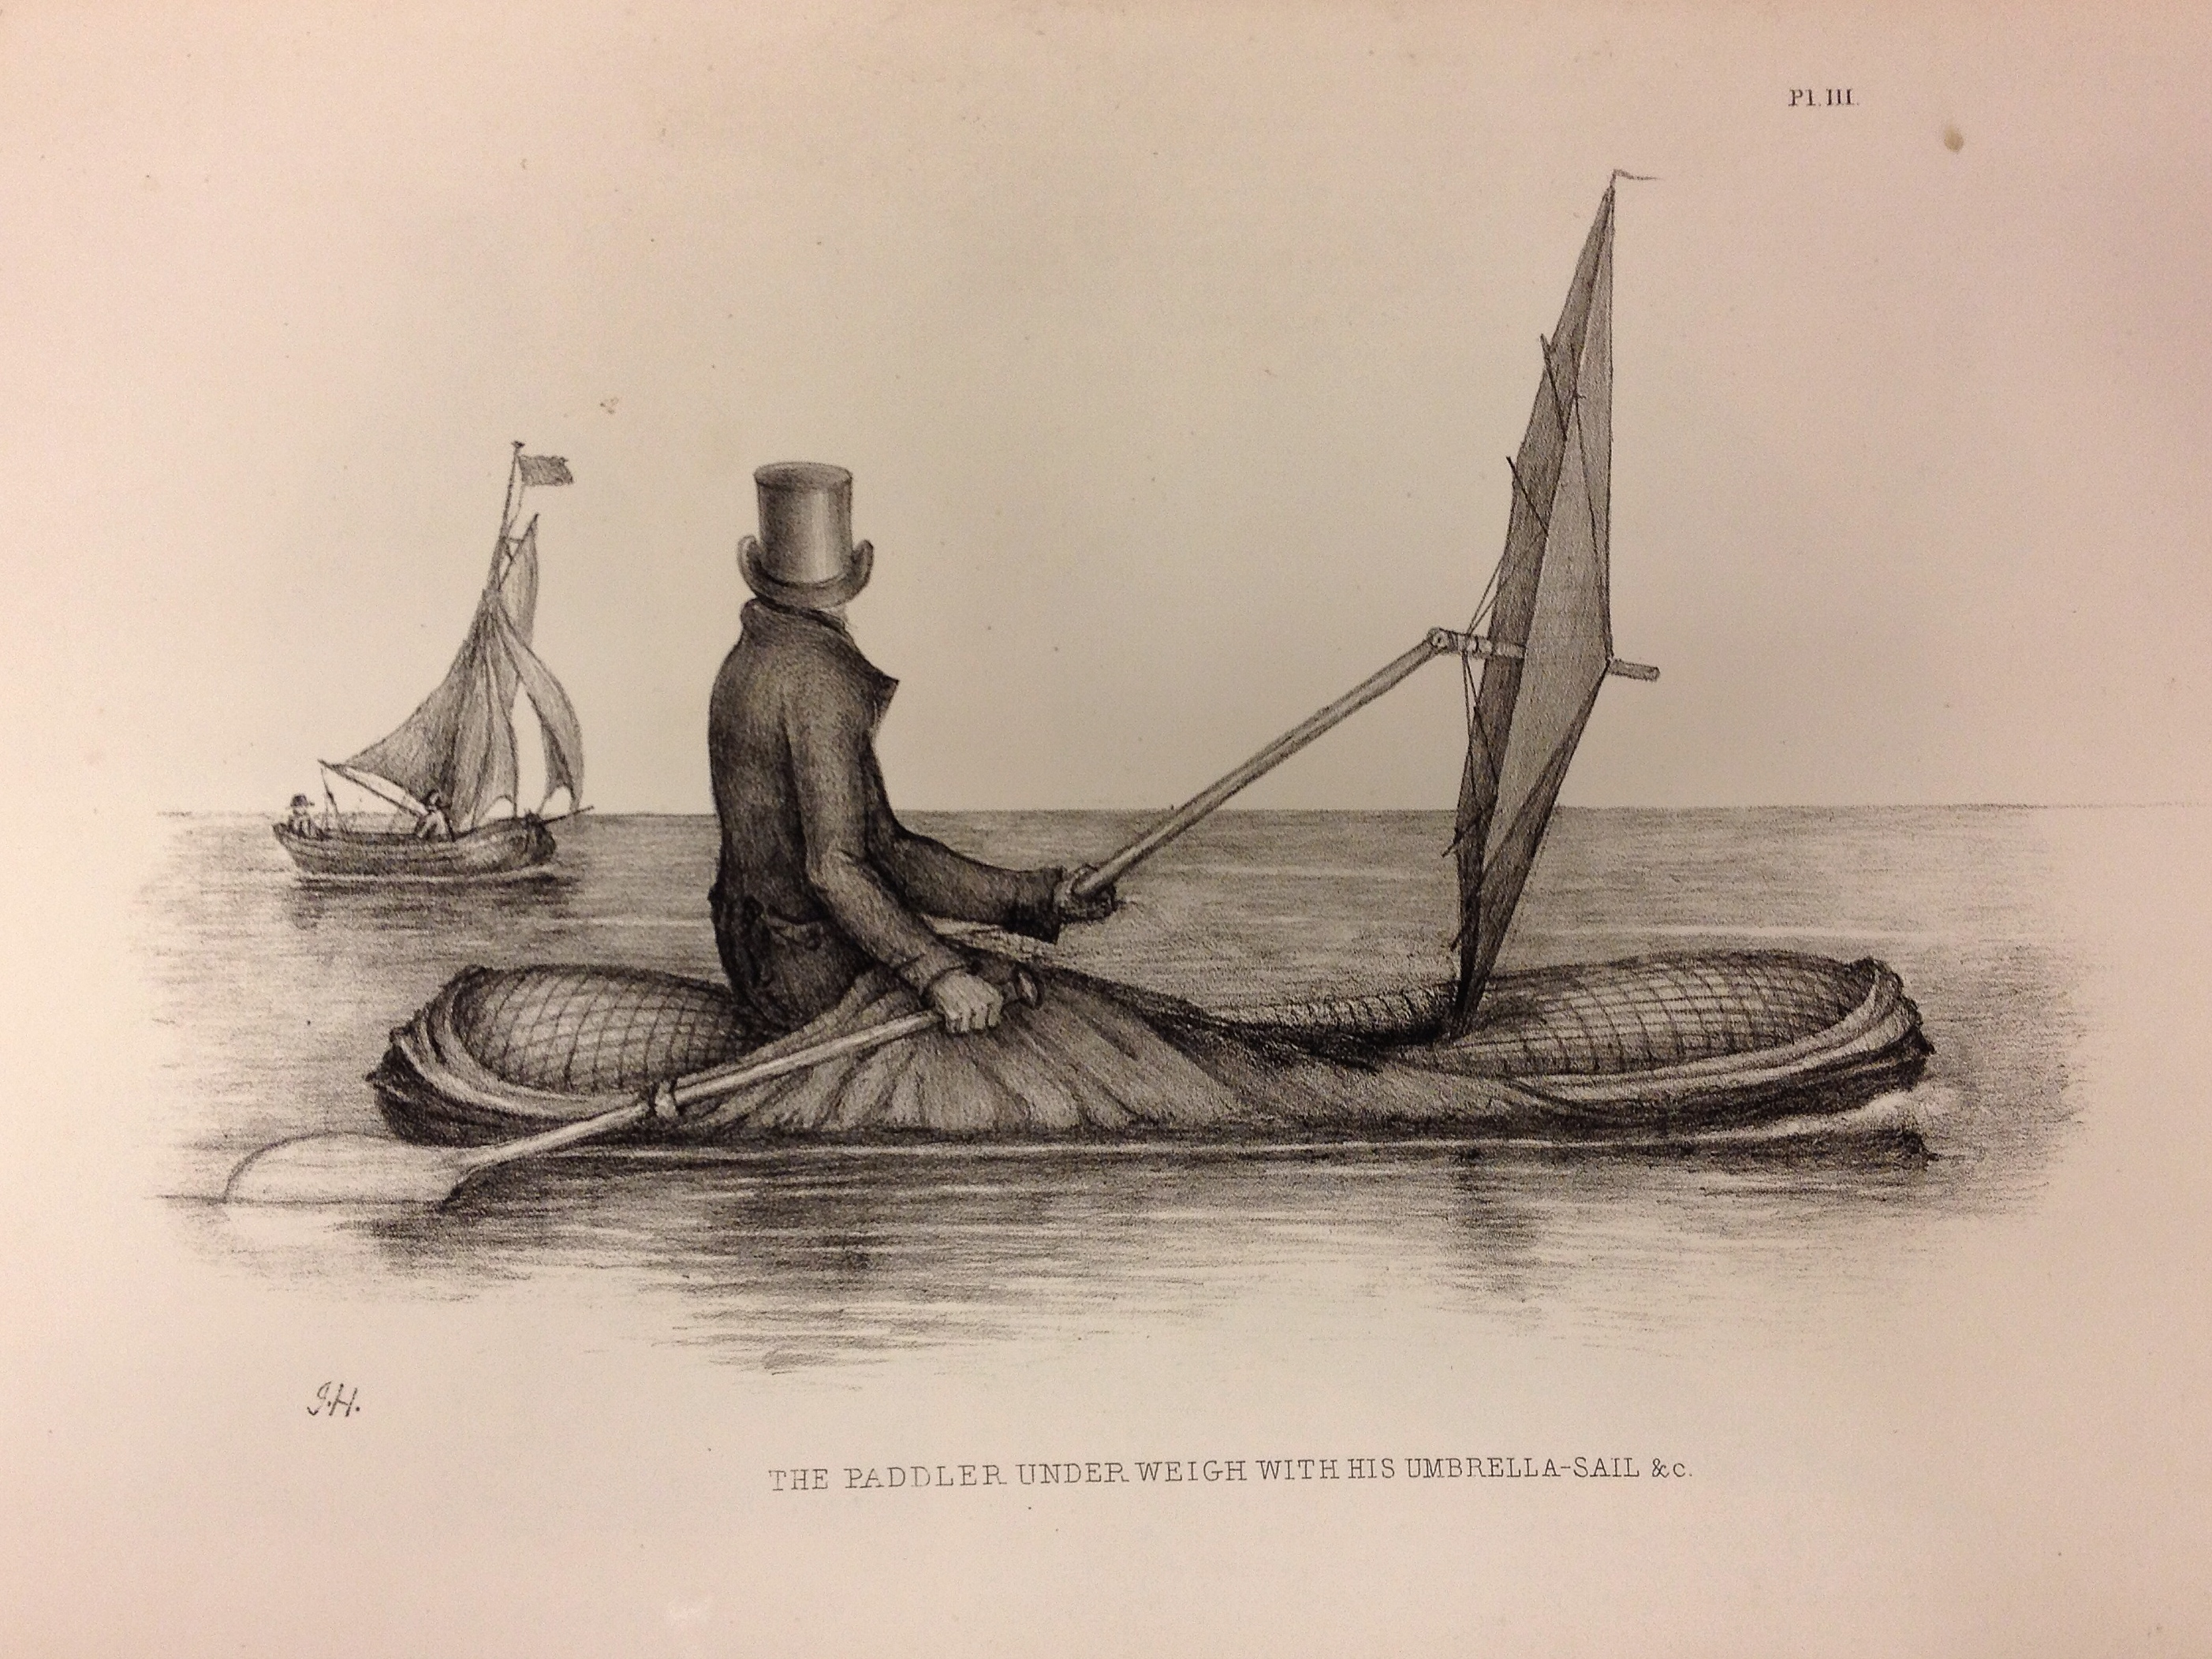 Boat-Cloak or Cloak-Boat, Peter Halkett (1848) on display in Lines in the Ice - this boat, developed in London and tested on the River Thames, was an early inflatable dinghy that doubled as a cloak (with a sail that doubled as an umbrella).